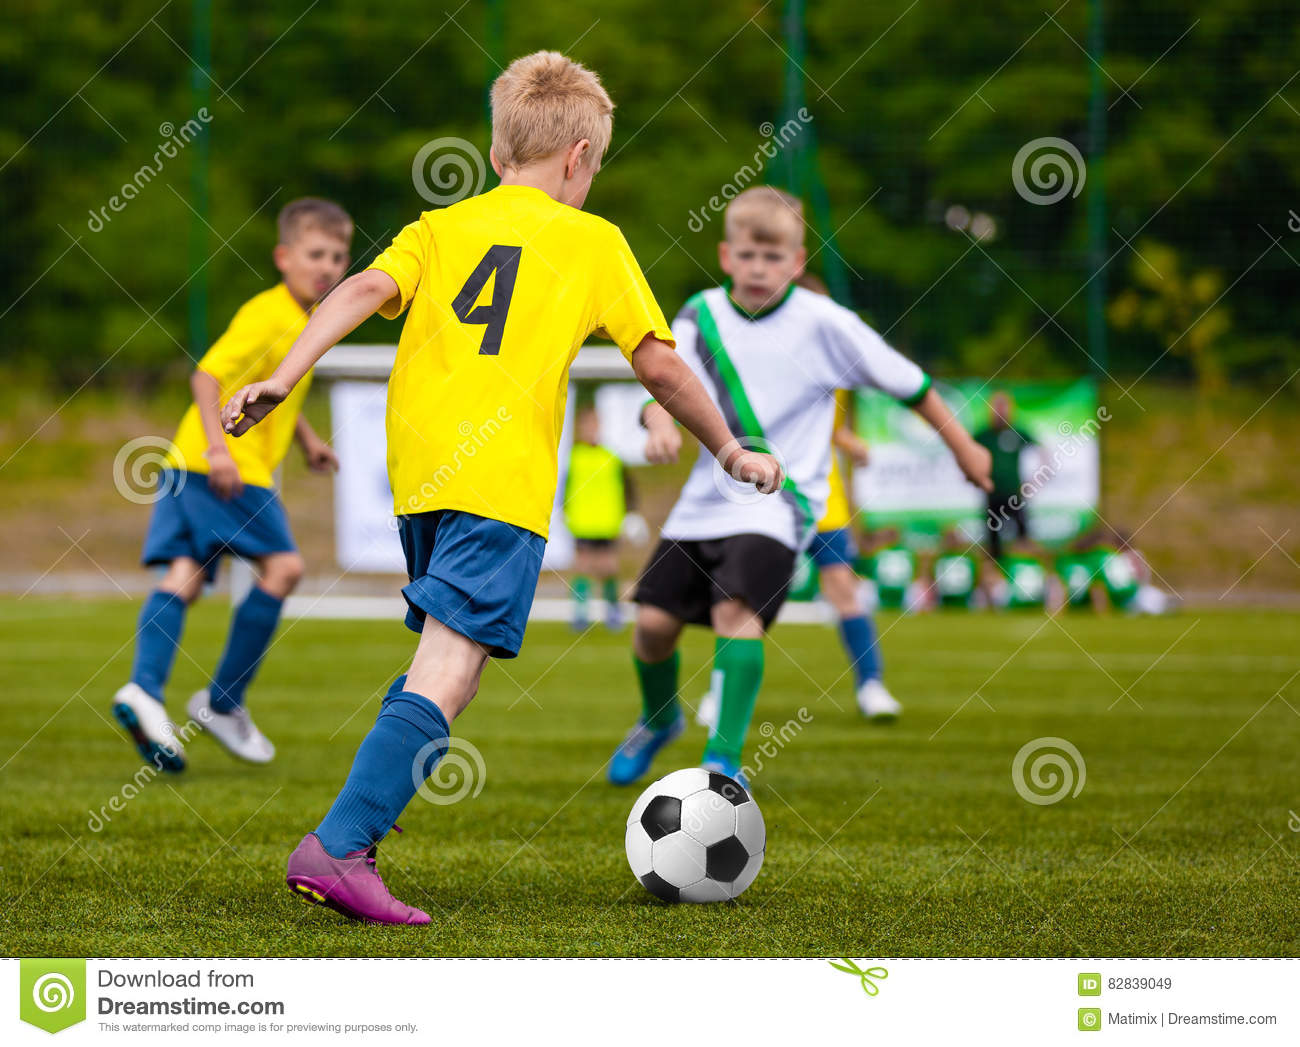 a description of children in competitive sports at a young age Should children play competitive sports in articles by australian sports camps april 11, 2017 there has been a lot of debate about whether playing competitive sports is positive or negative for young children.